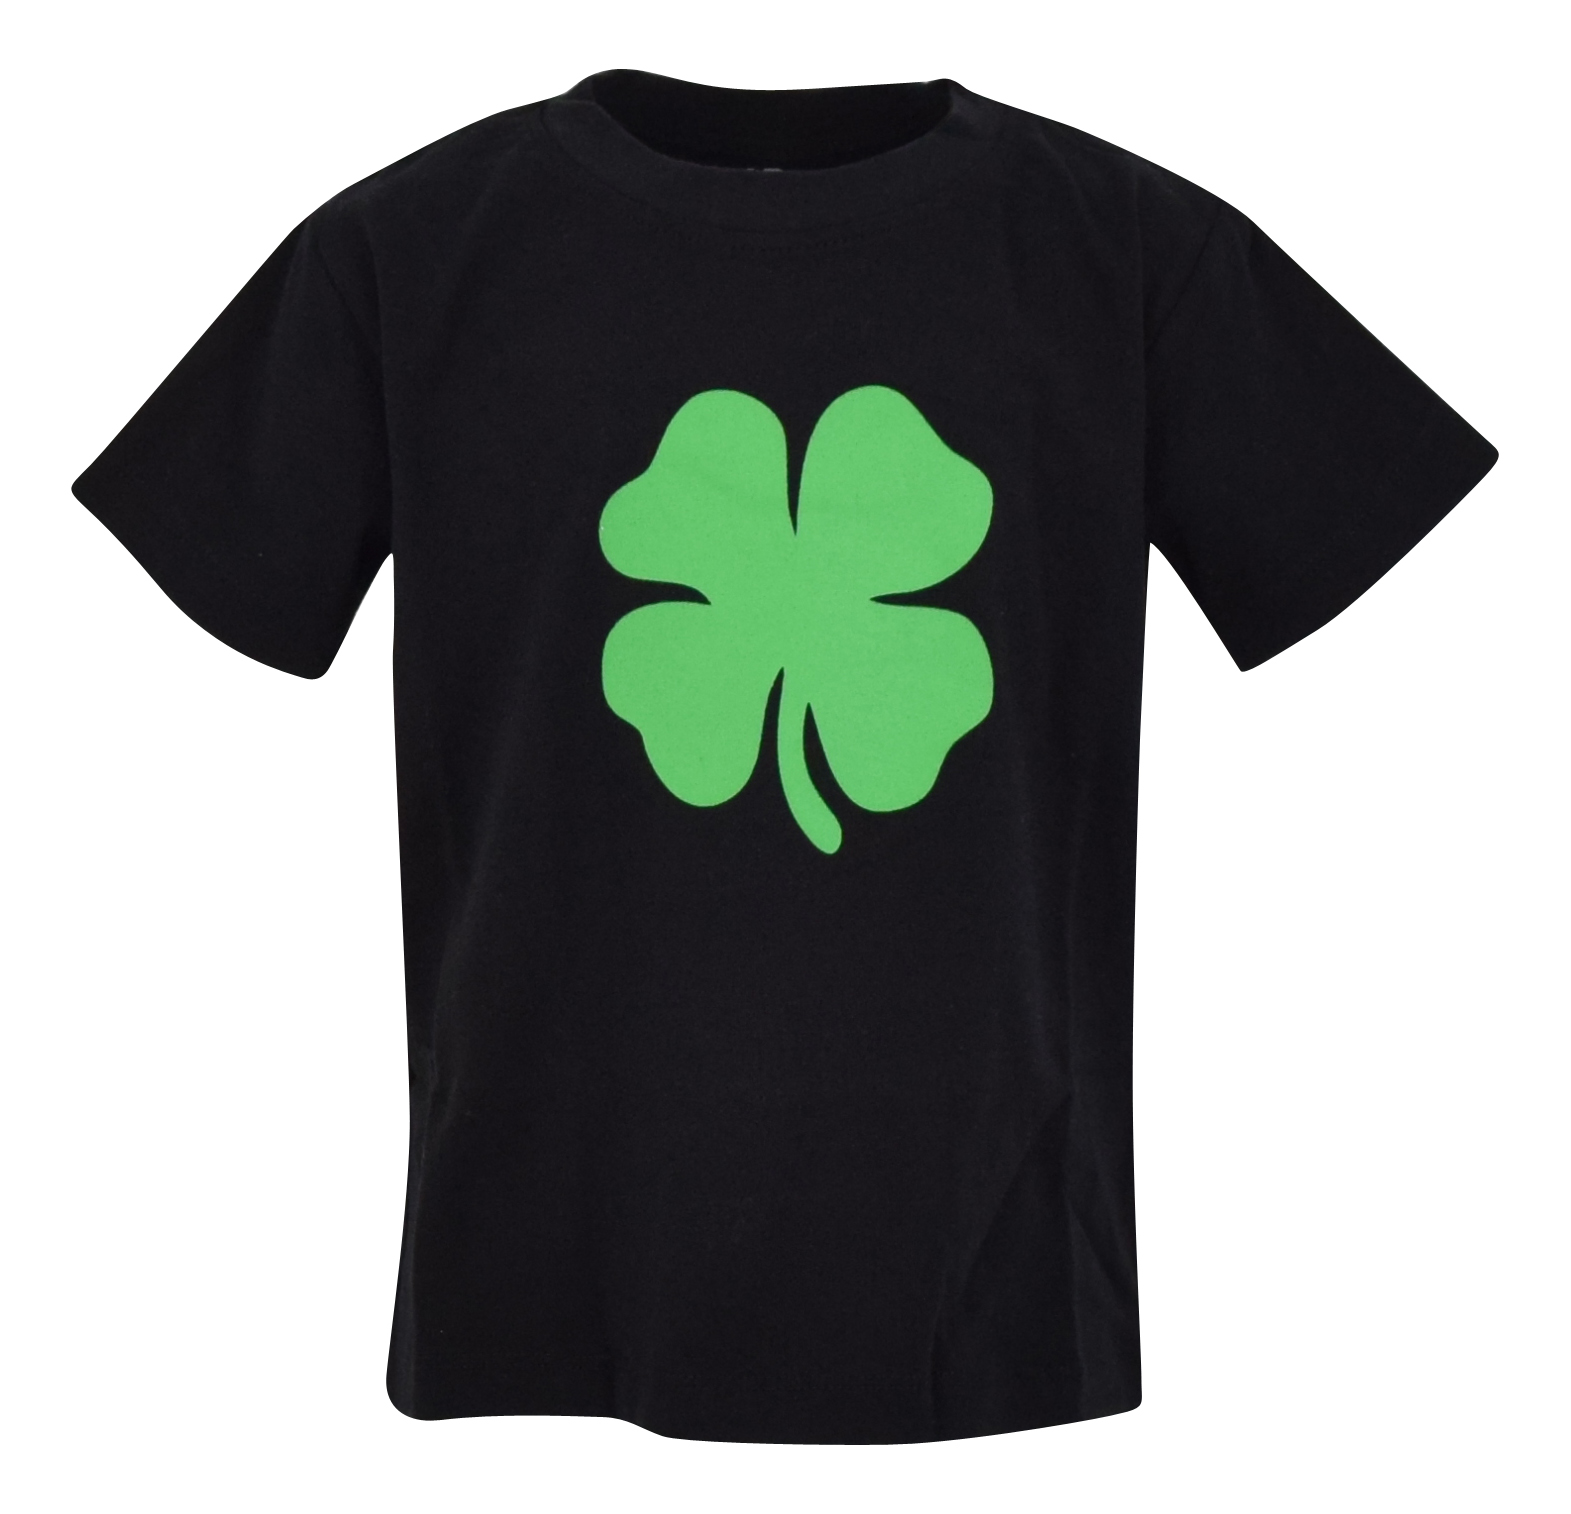 Boys-2-Piece-ST-Patricks-Day-Clover-Outfit-2t-3t-4t-5-6-7-8-Toddler-Kids-Clothes thumbnail 11